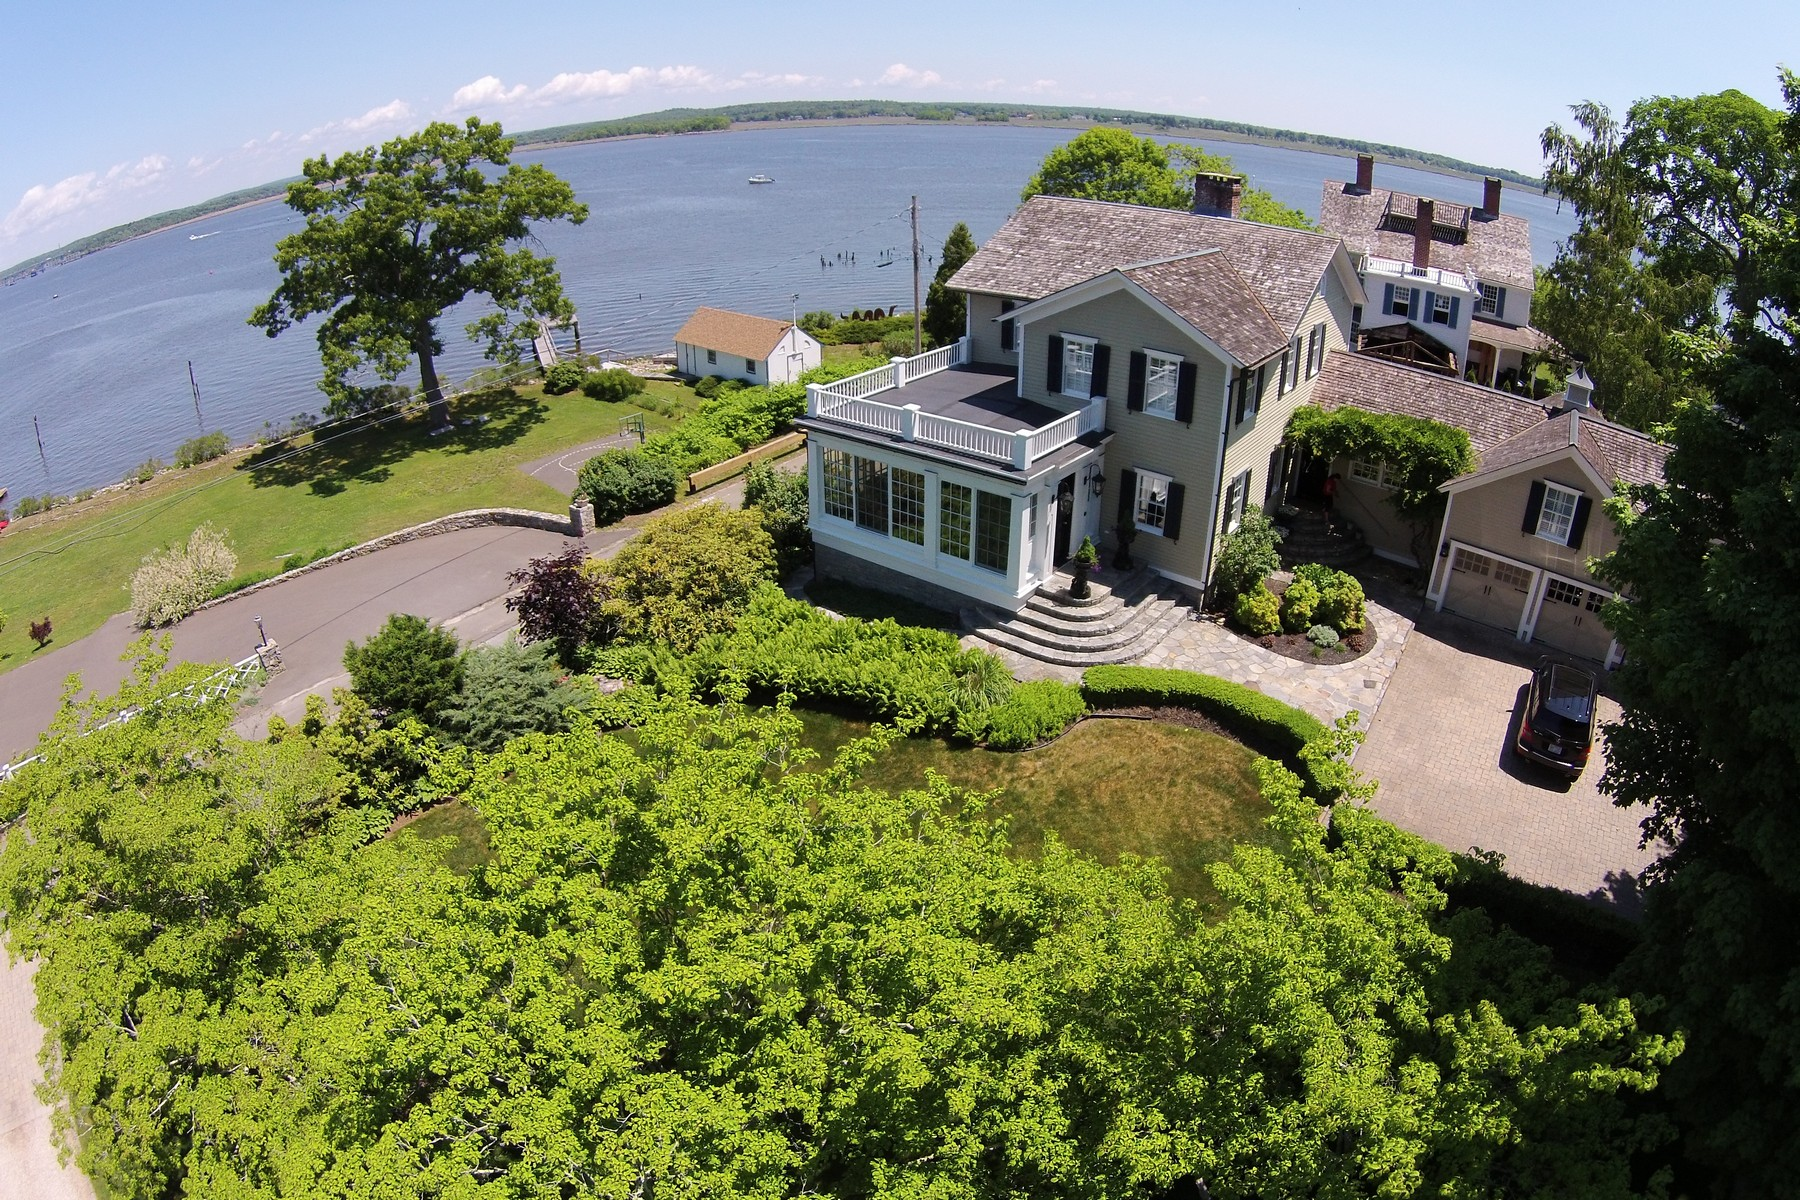 Casa Unifamiliar por un Venta en Beautiful Historic Waterfront Home 184 North Cove Rd Old Saybrook, Connecticut 06475 Estados Unidos